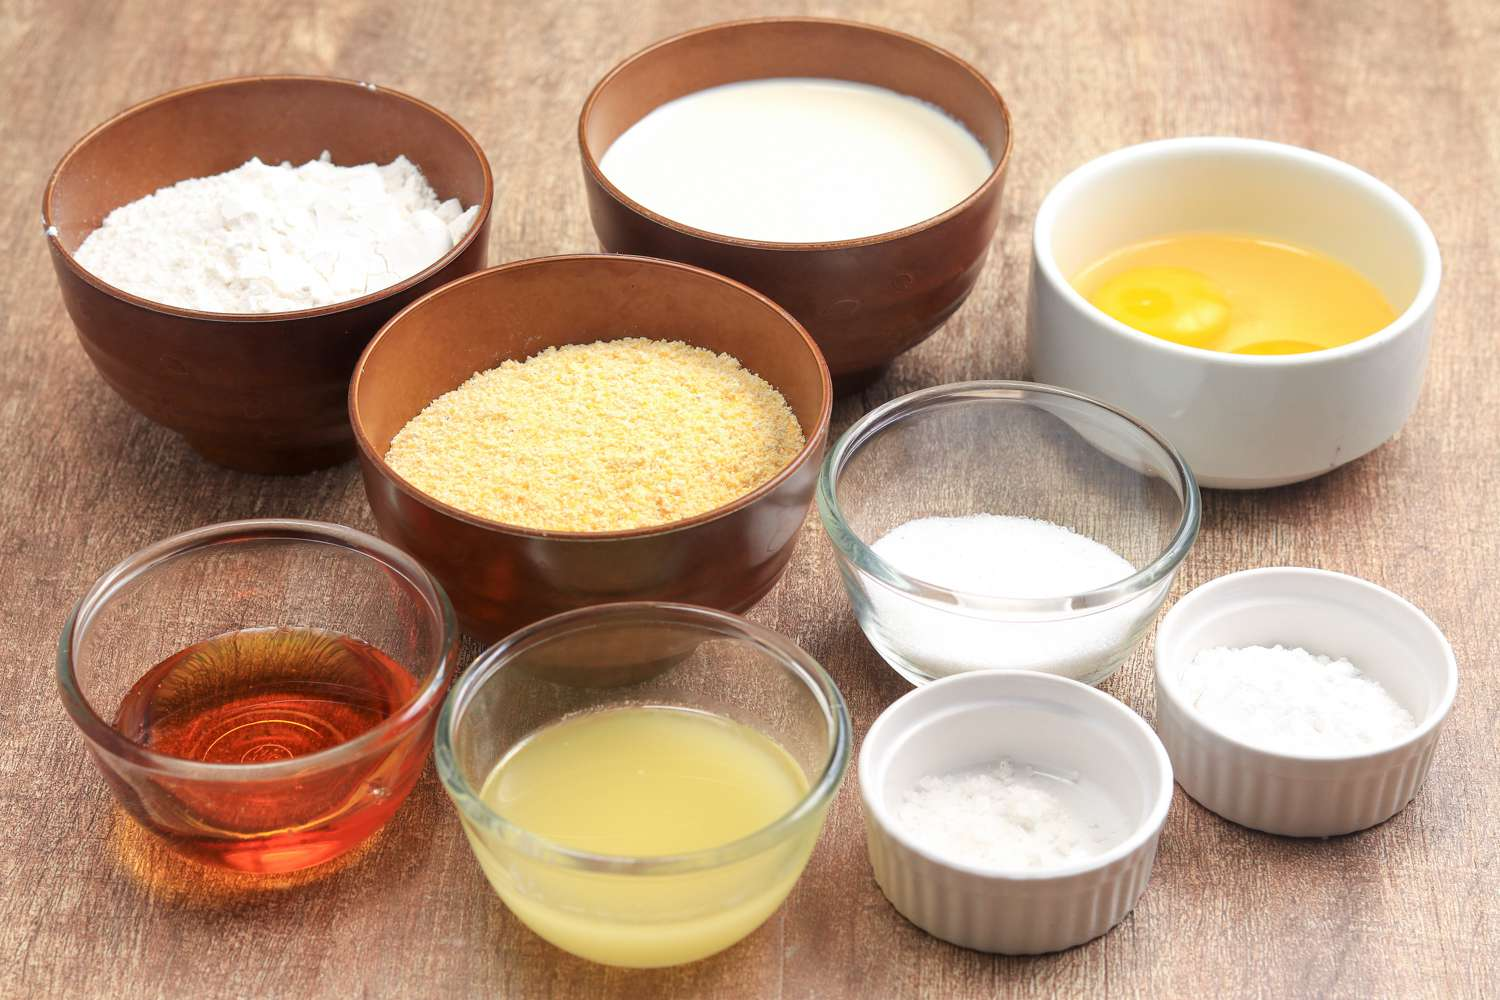 ingredients for basic corn bread